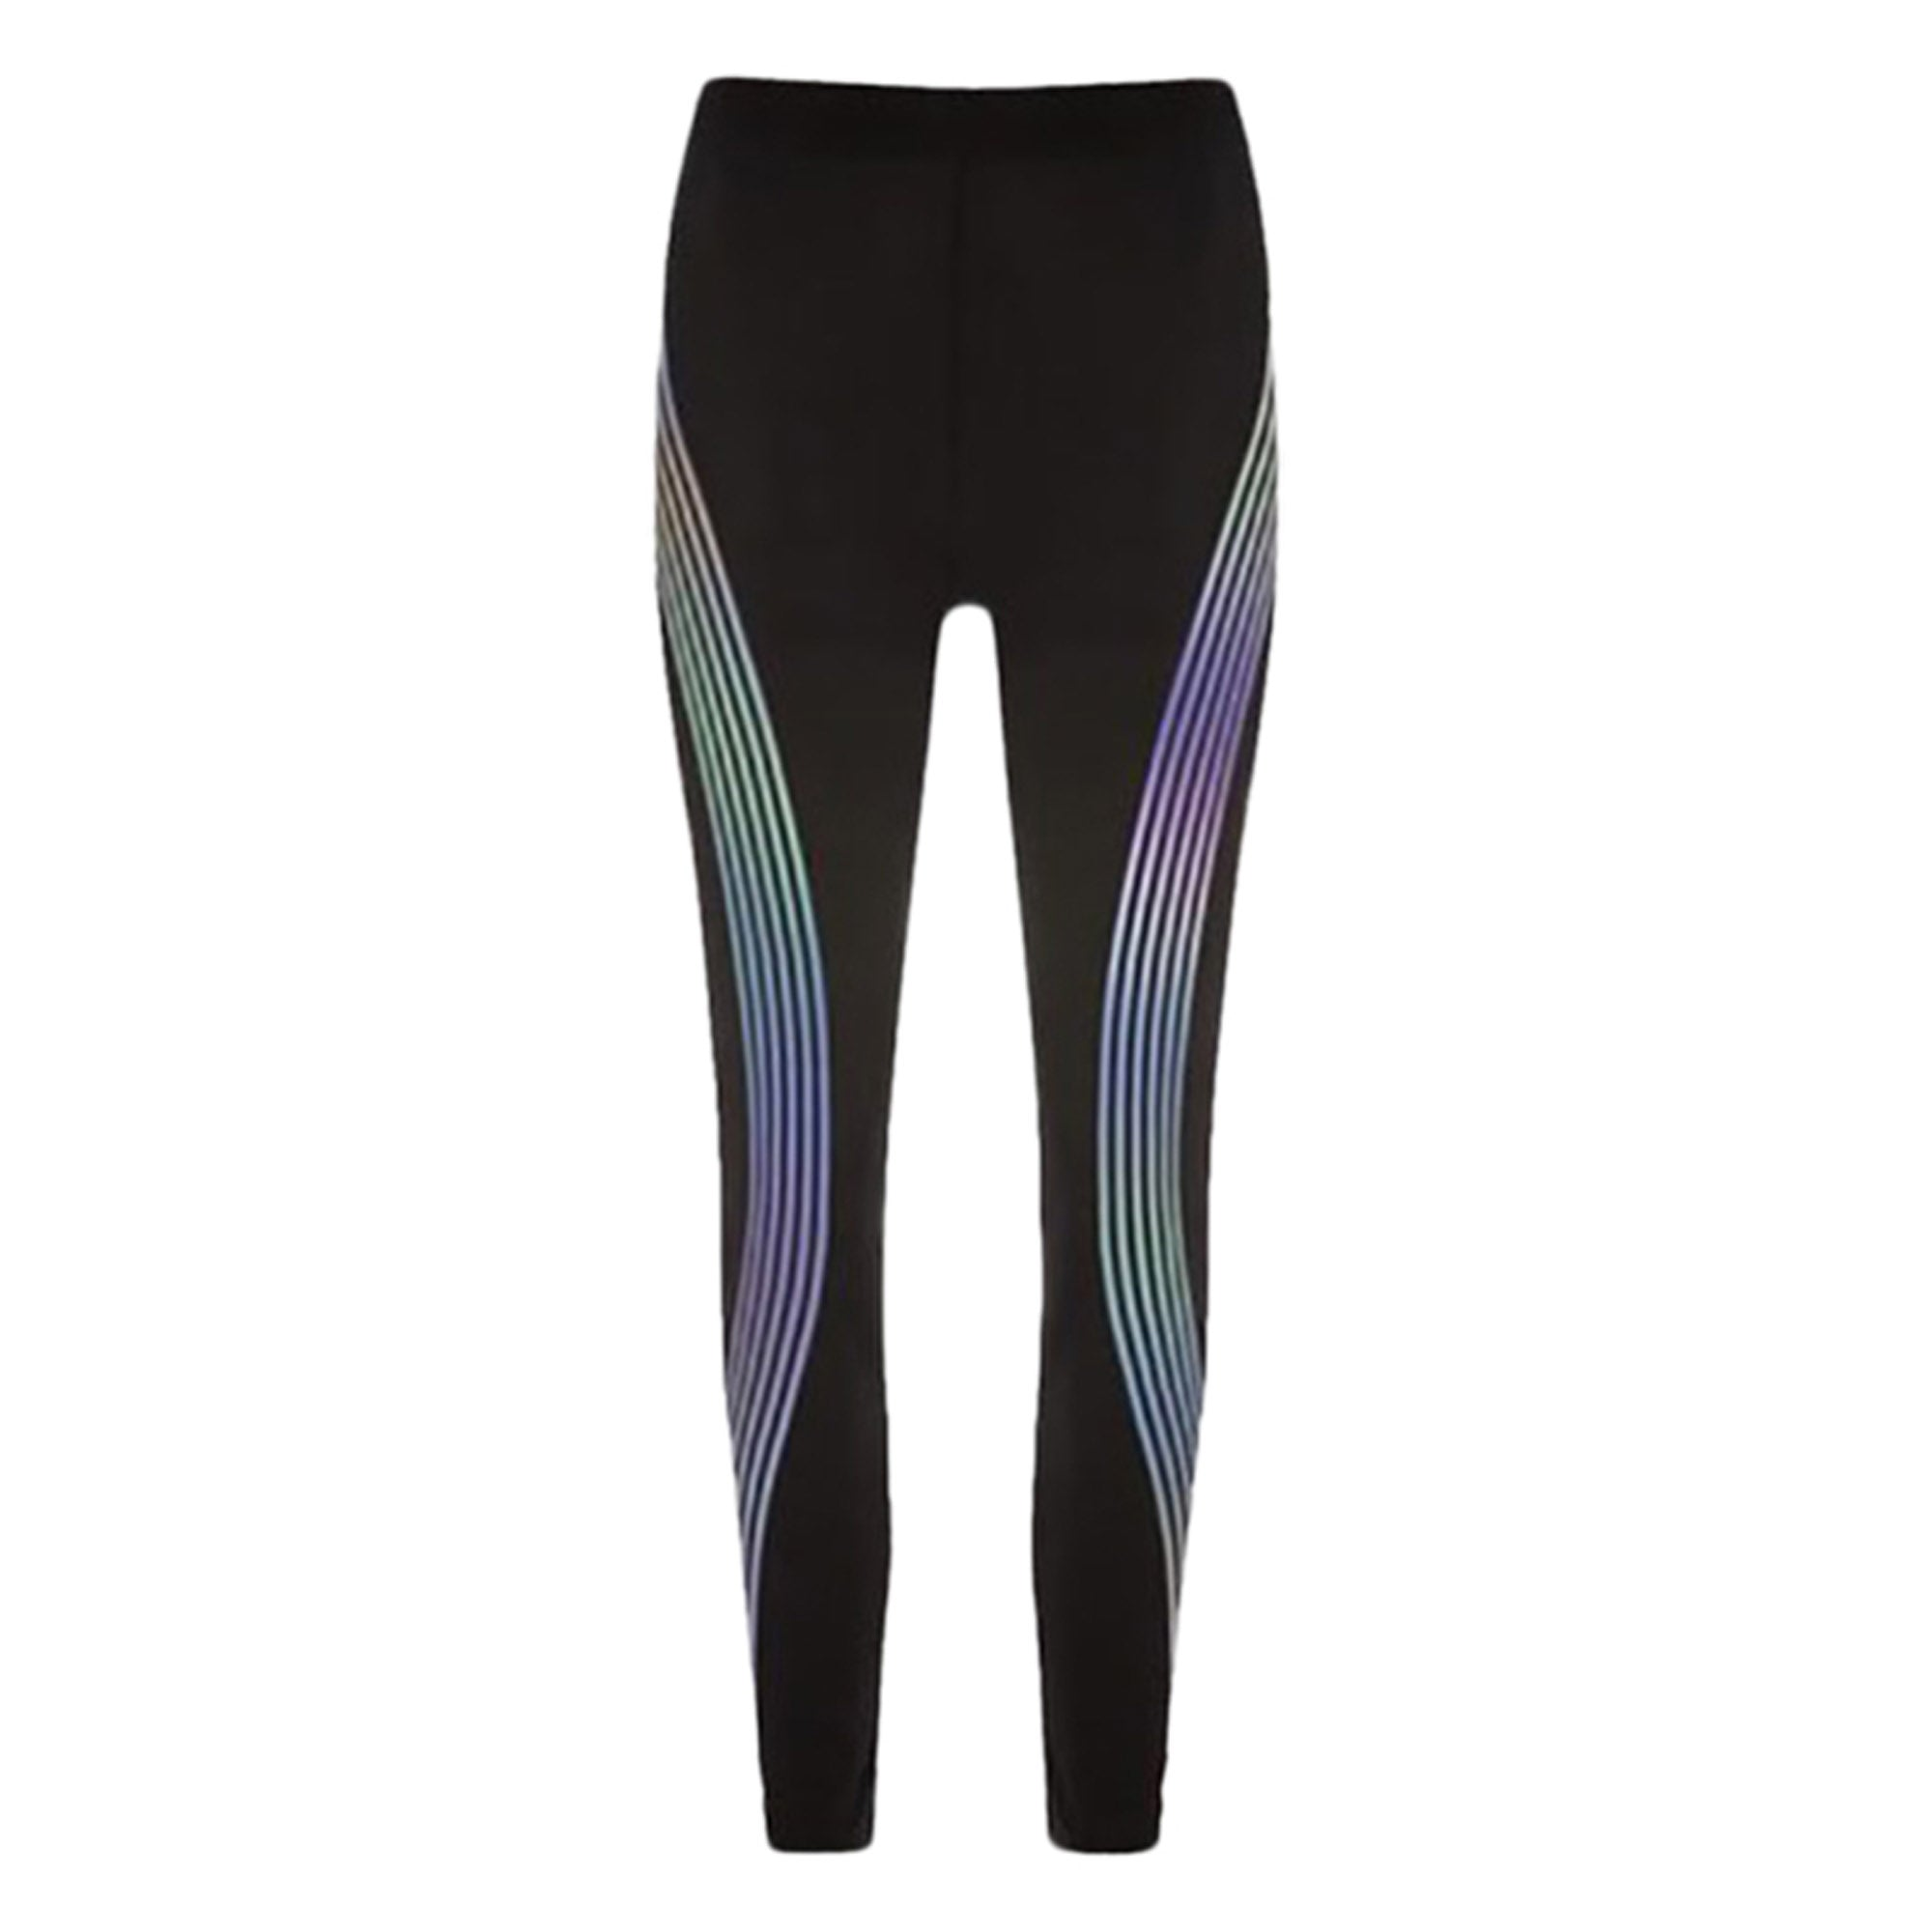 f9c2048581f35 ... Workout Outfit Ideas Glow in the Dark Leggings for Women for Teen Girls  in Black Cute ...